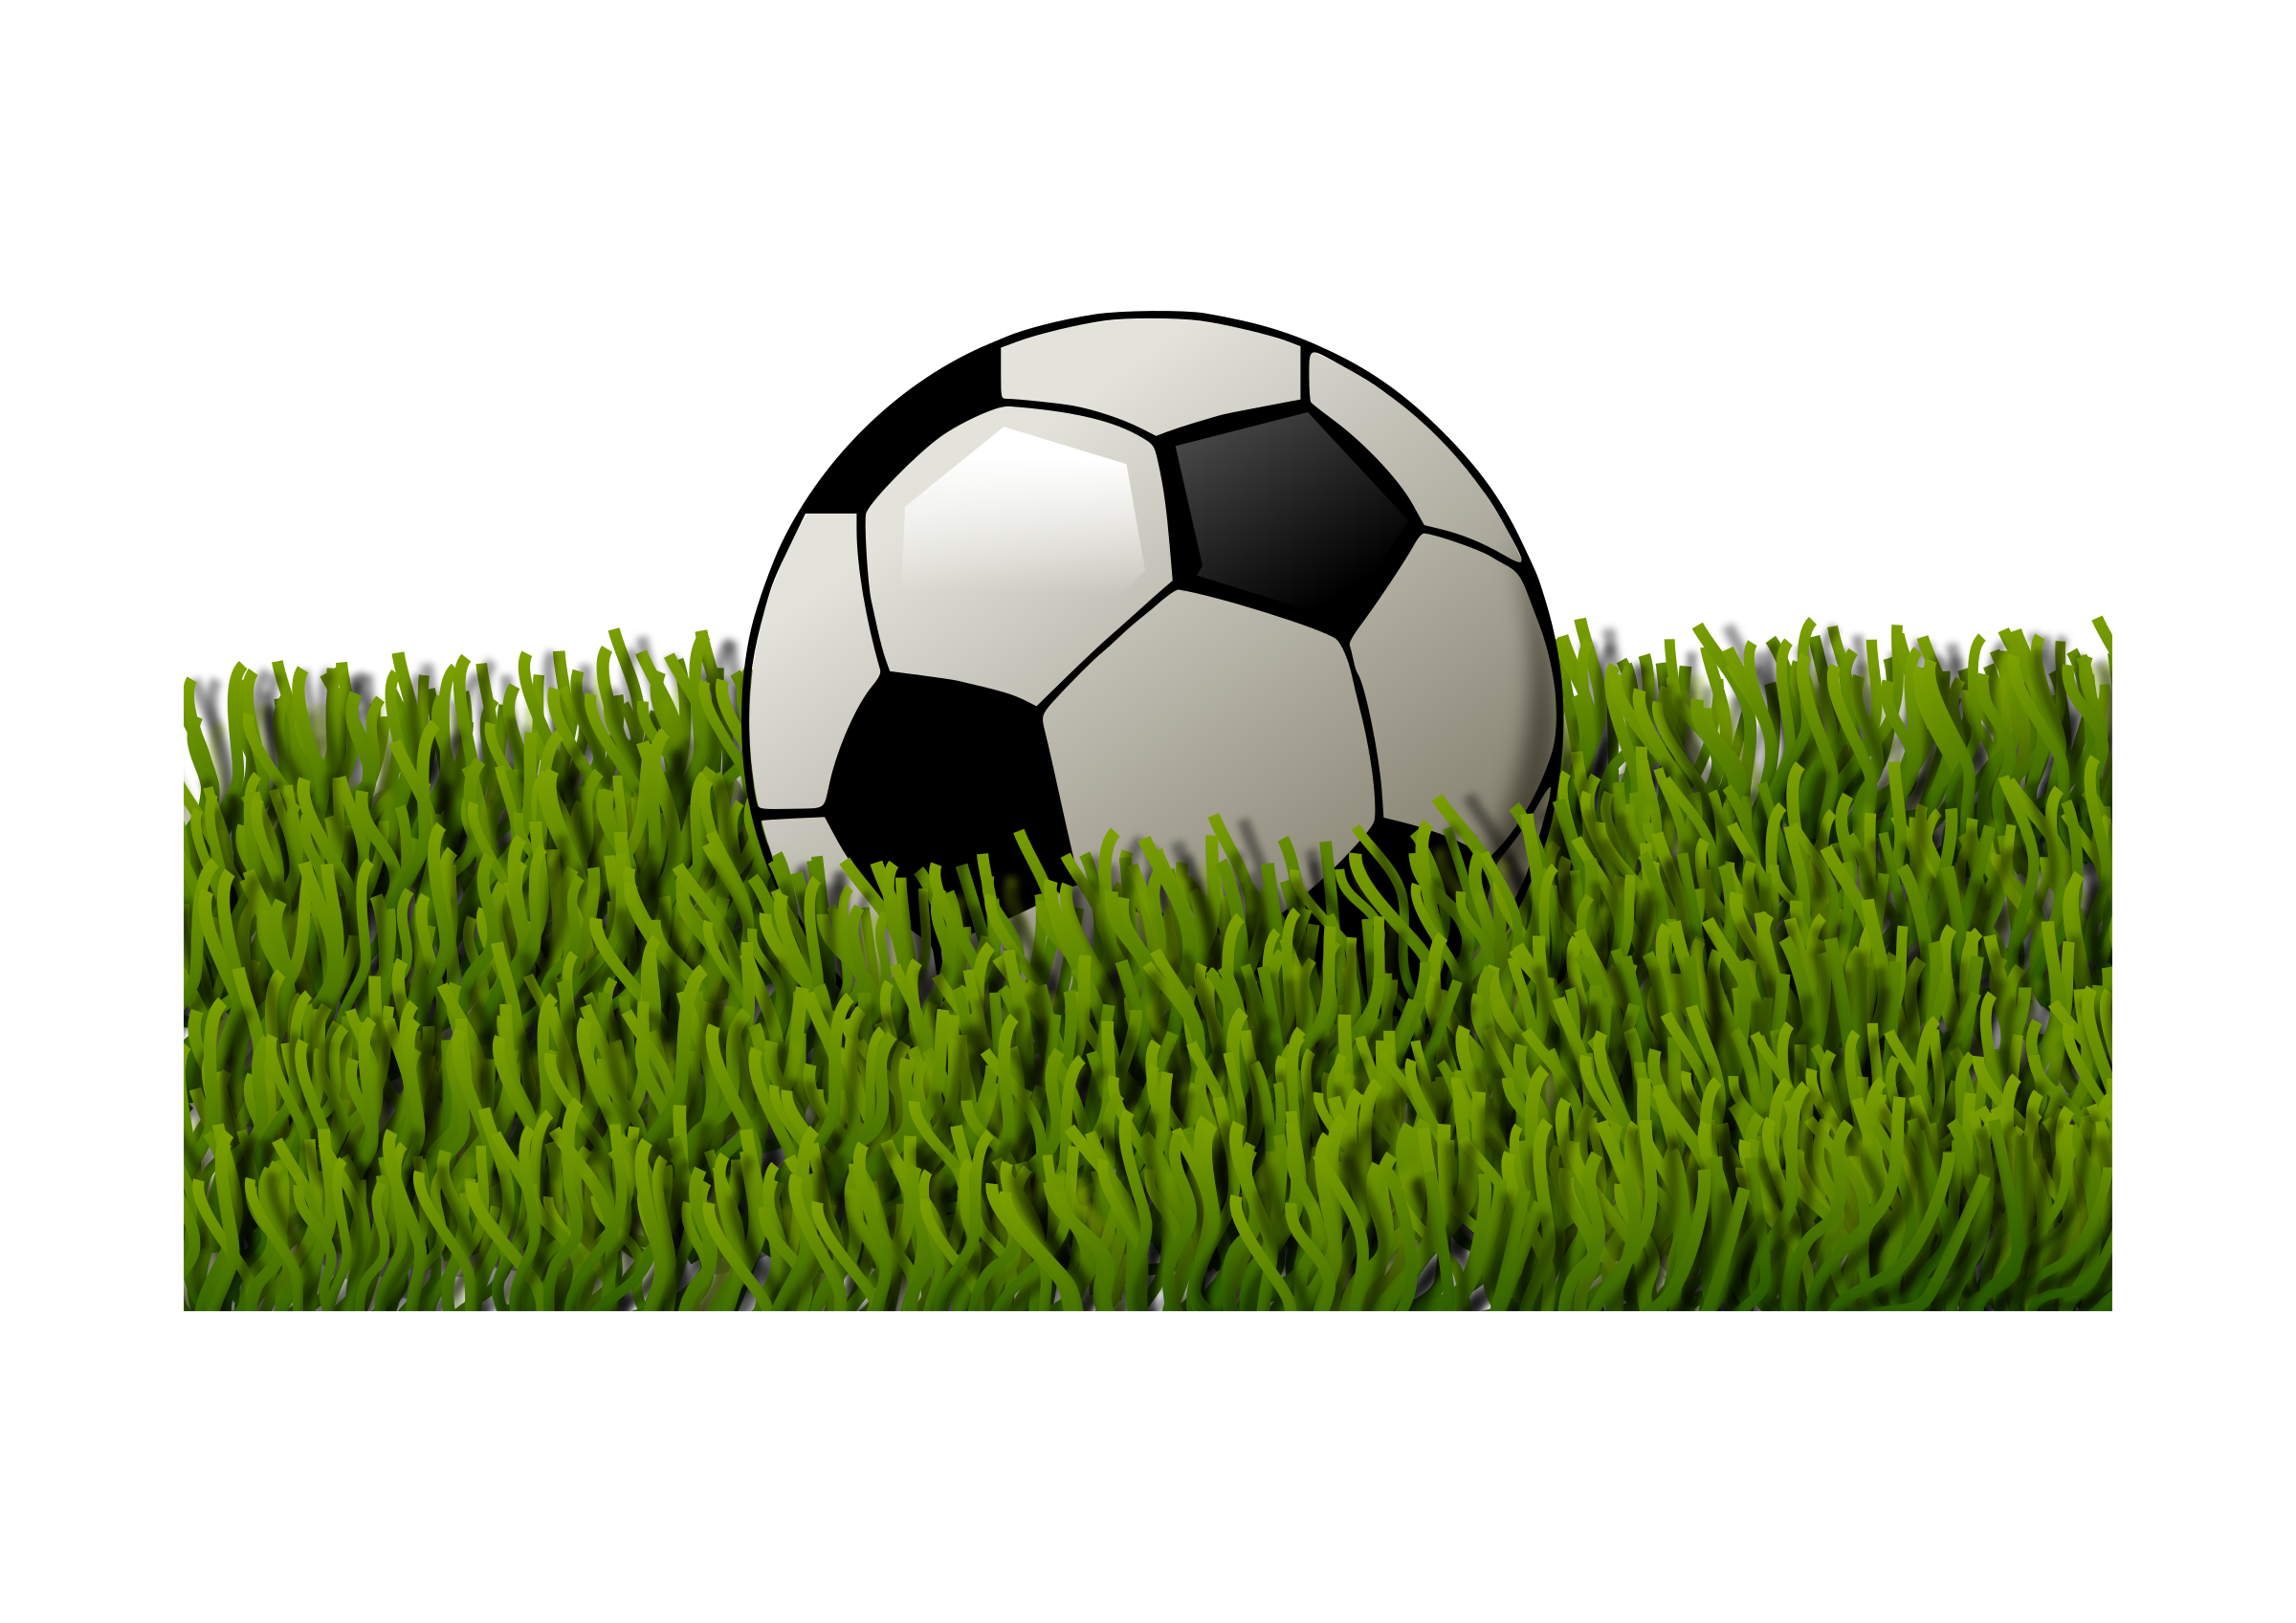 Soccer ball on grass 2 by Almeidah